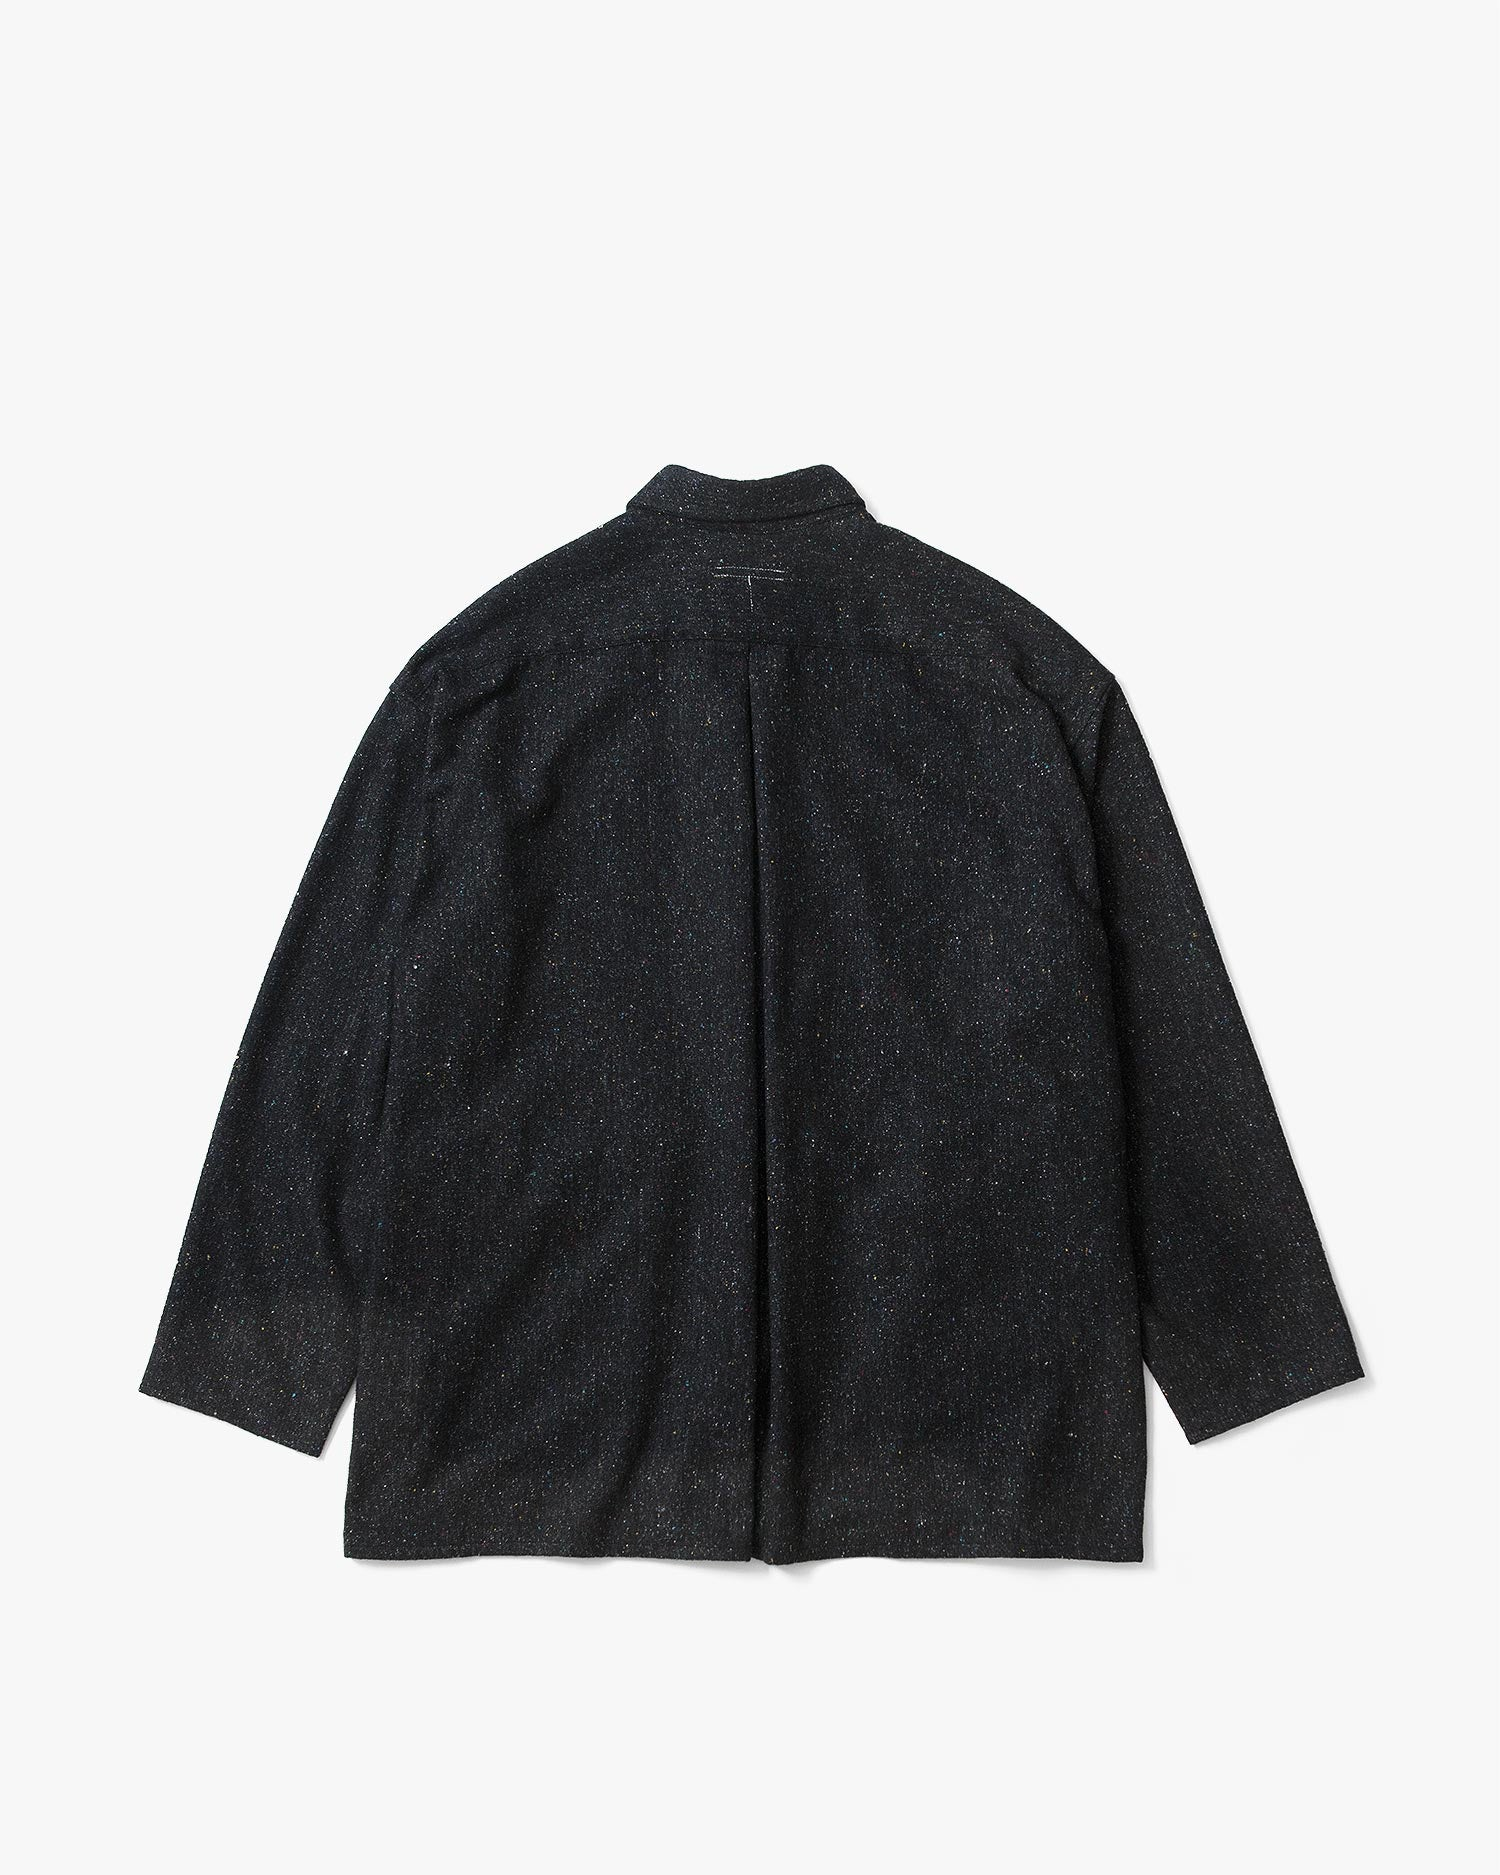 Homeless Over Shirt - Silk×Wool